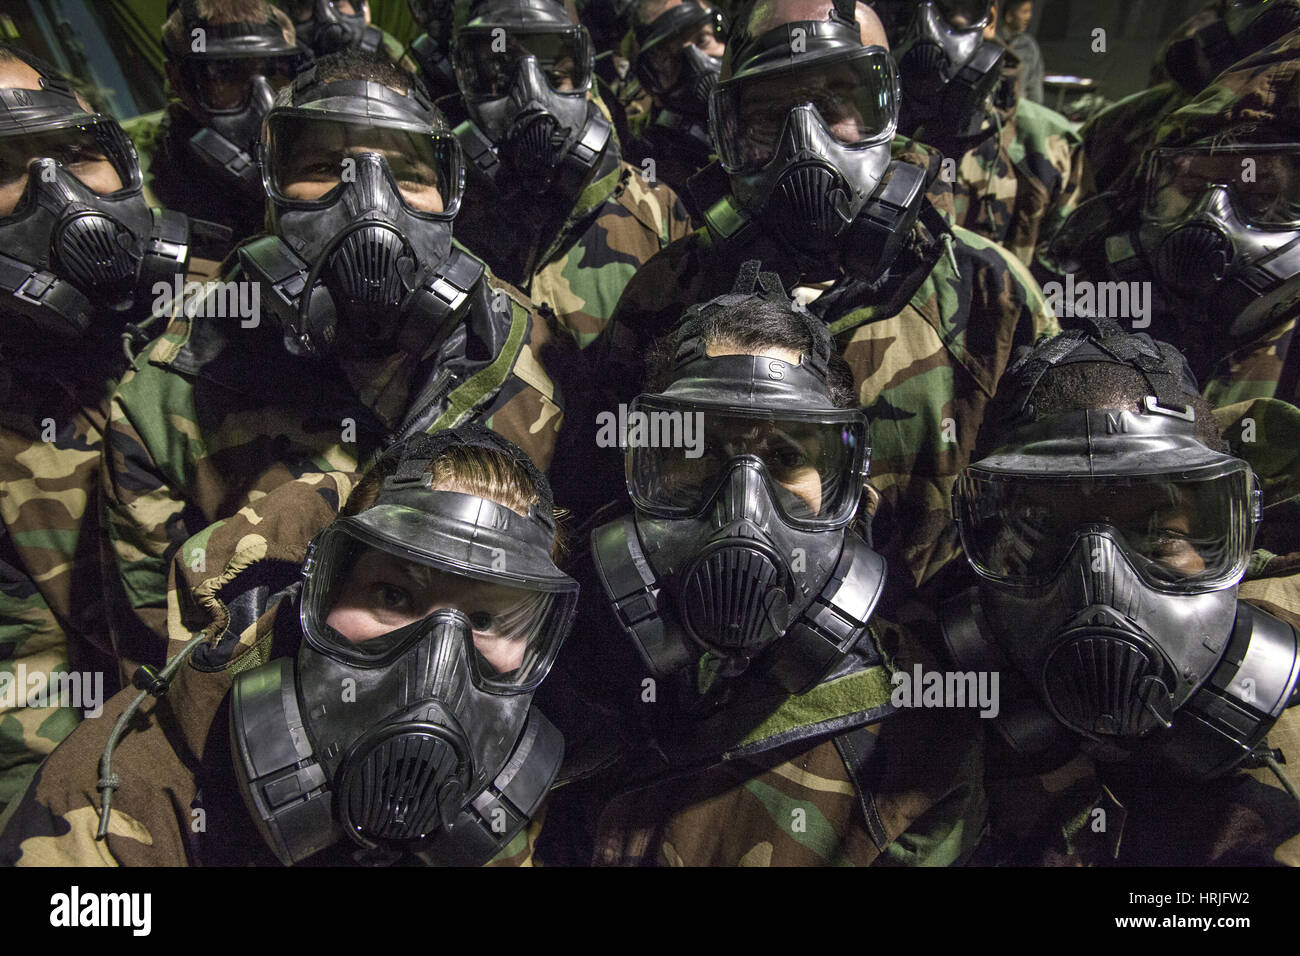 U.S. Airmen In Gas Masks - Stock Image